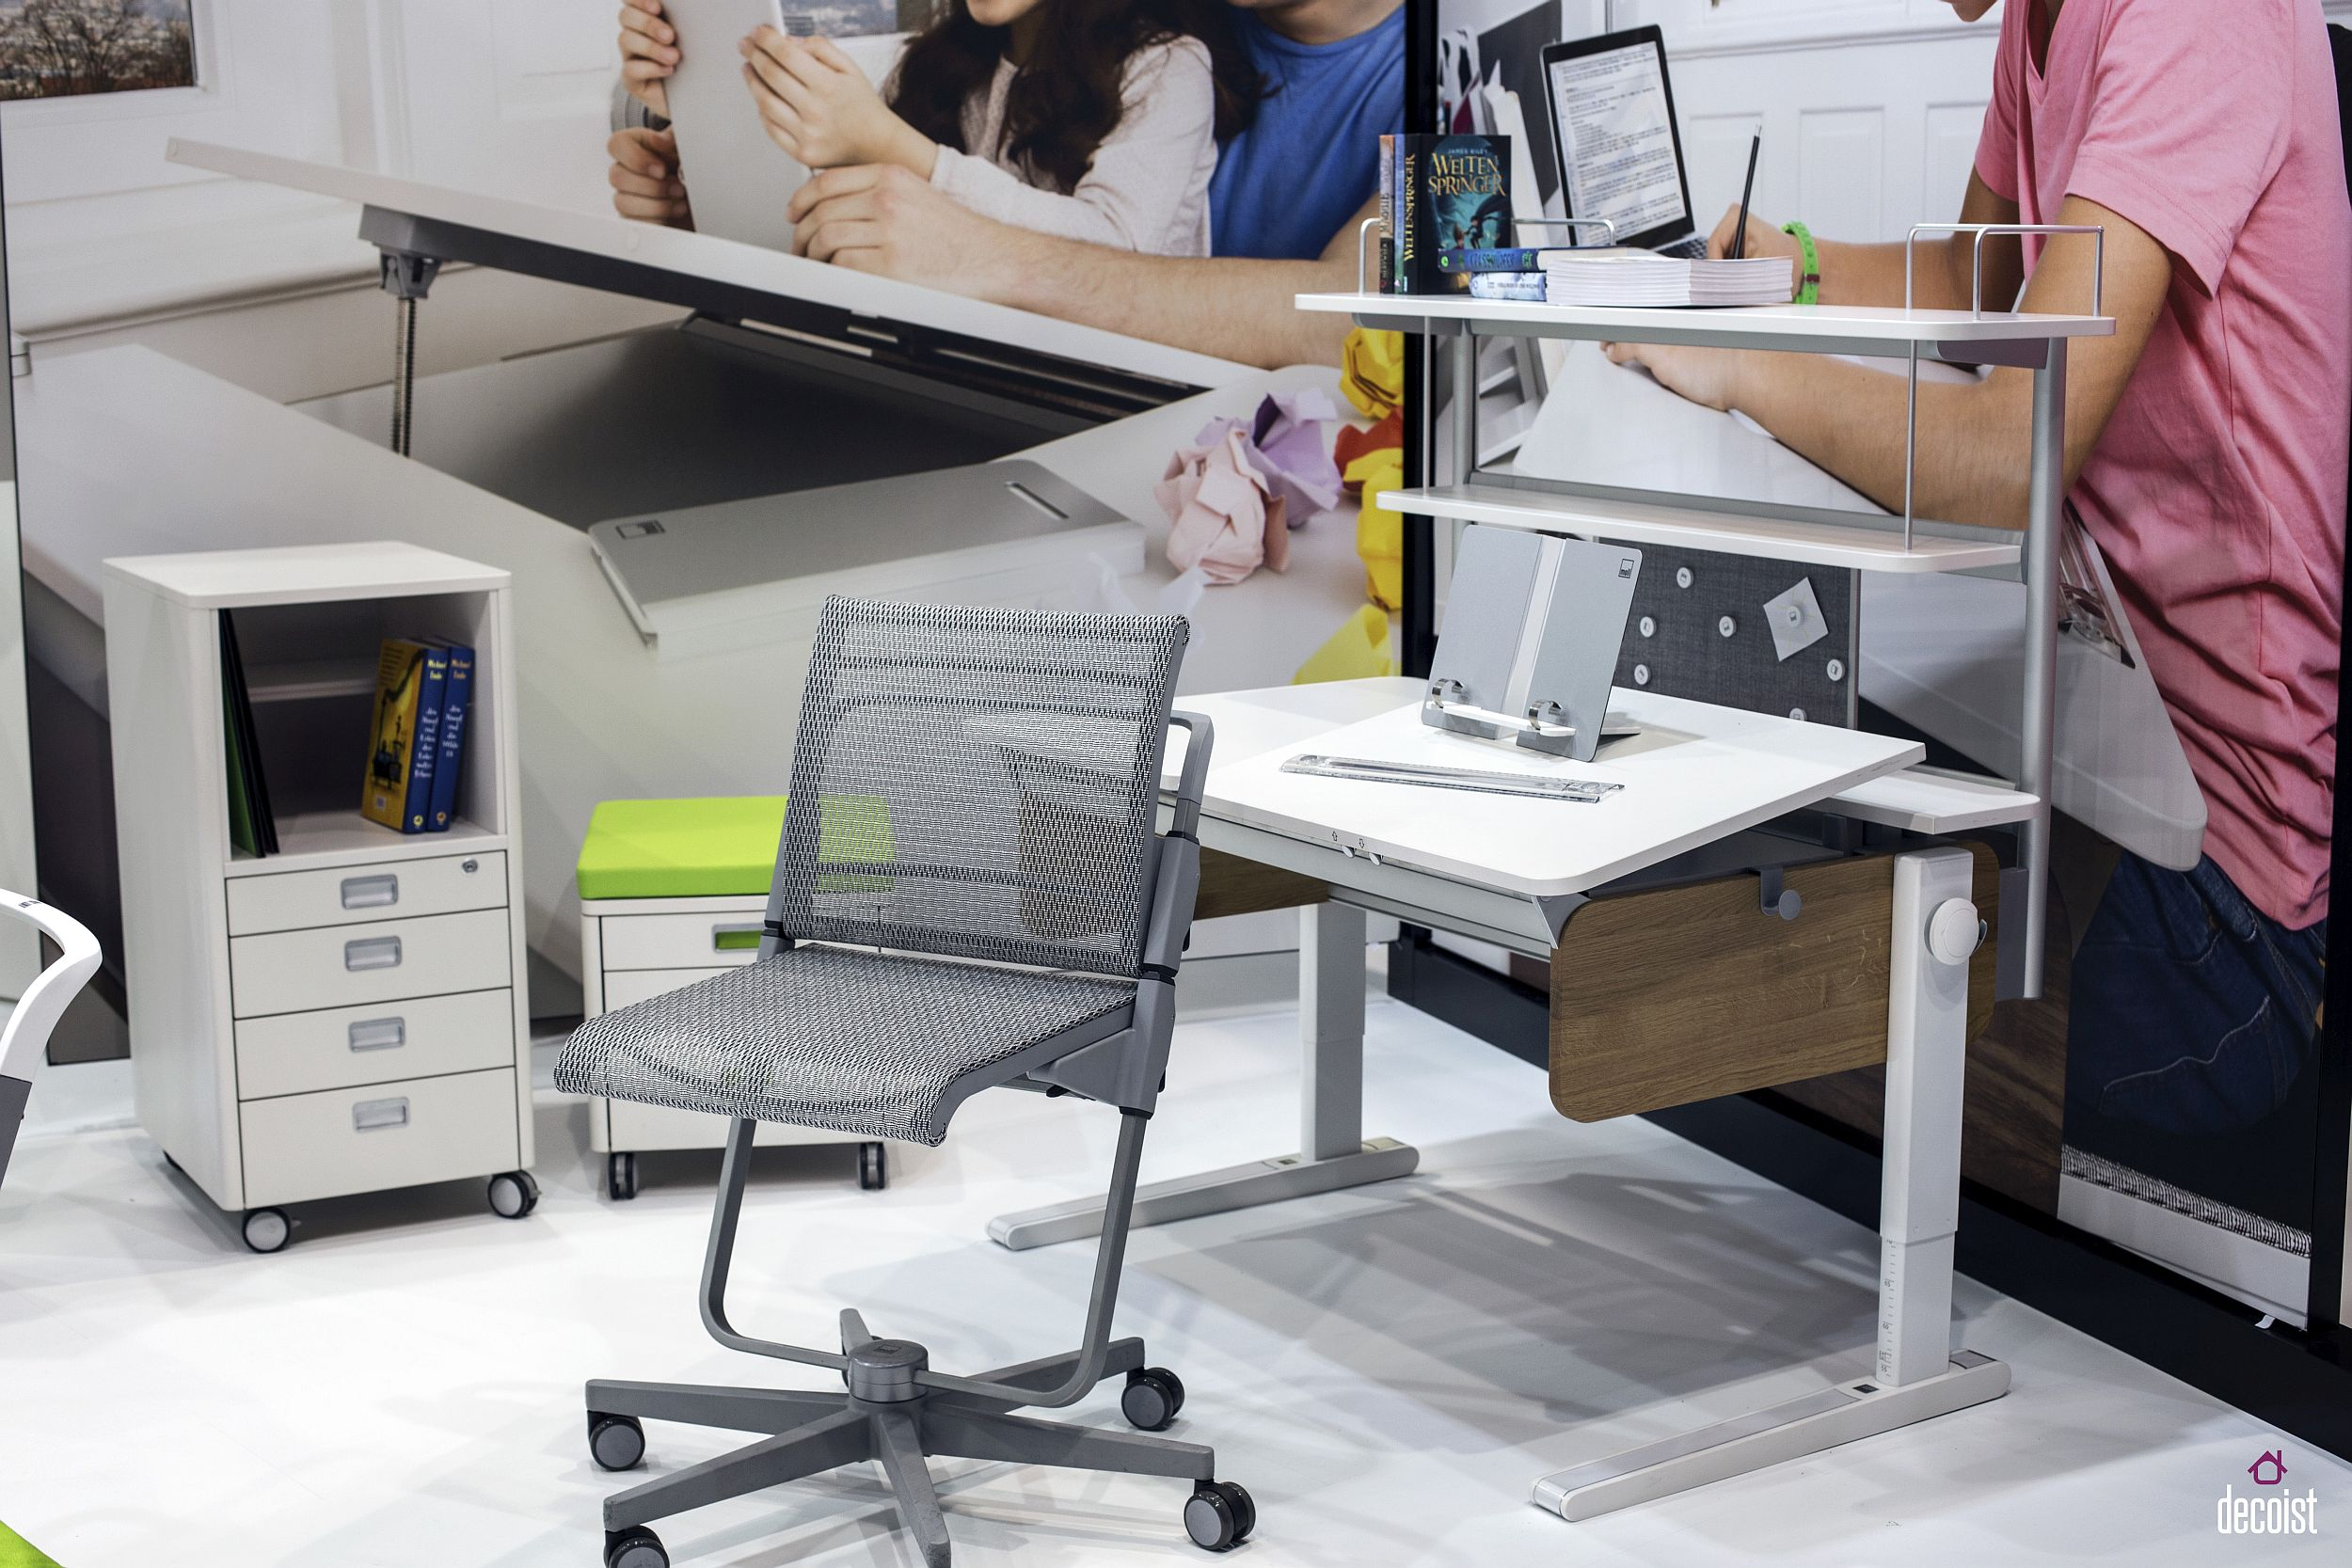 Smart desks are great for both kids and adults alike